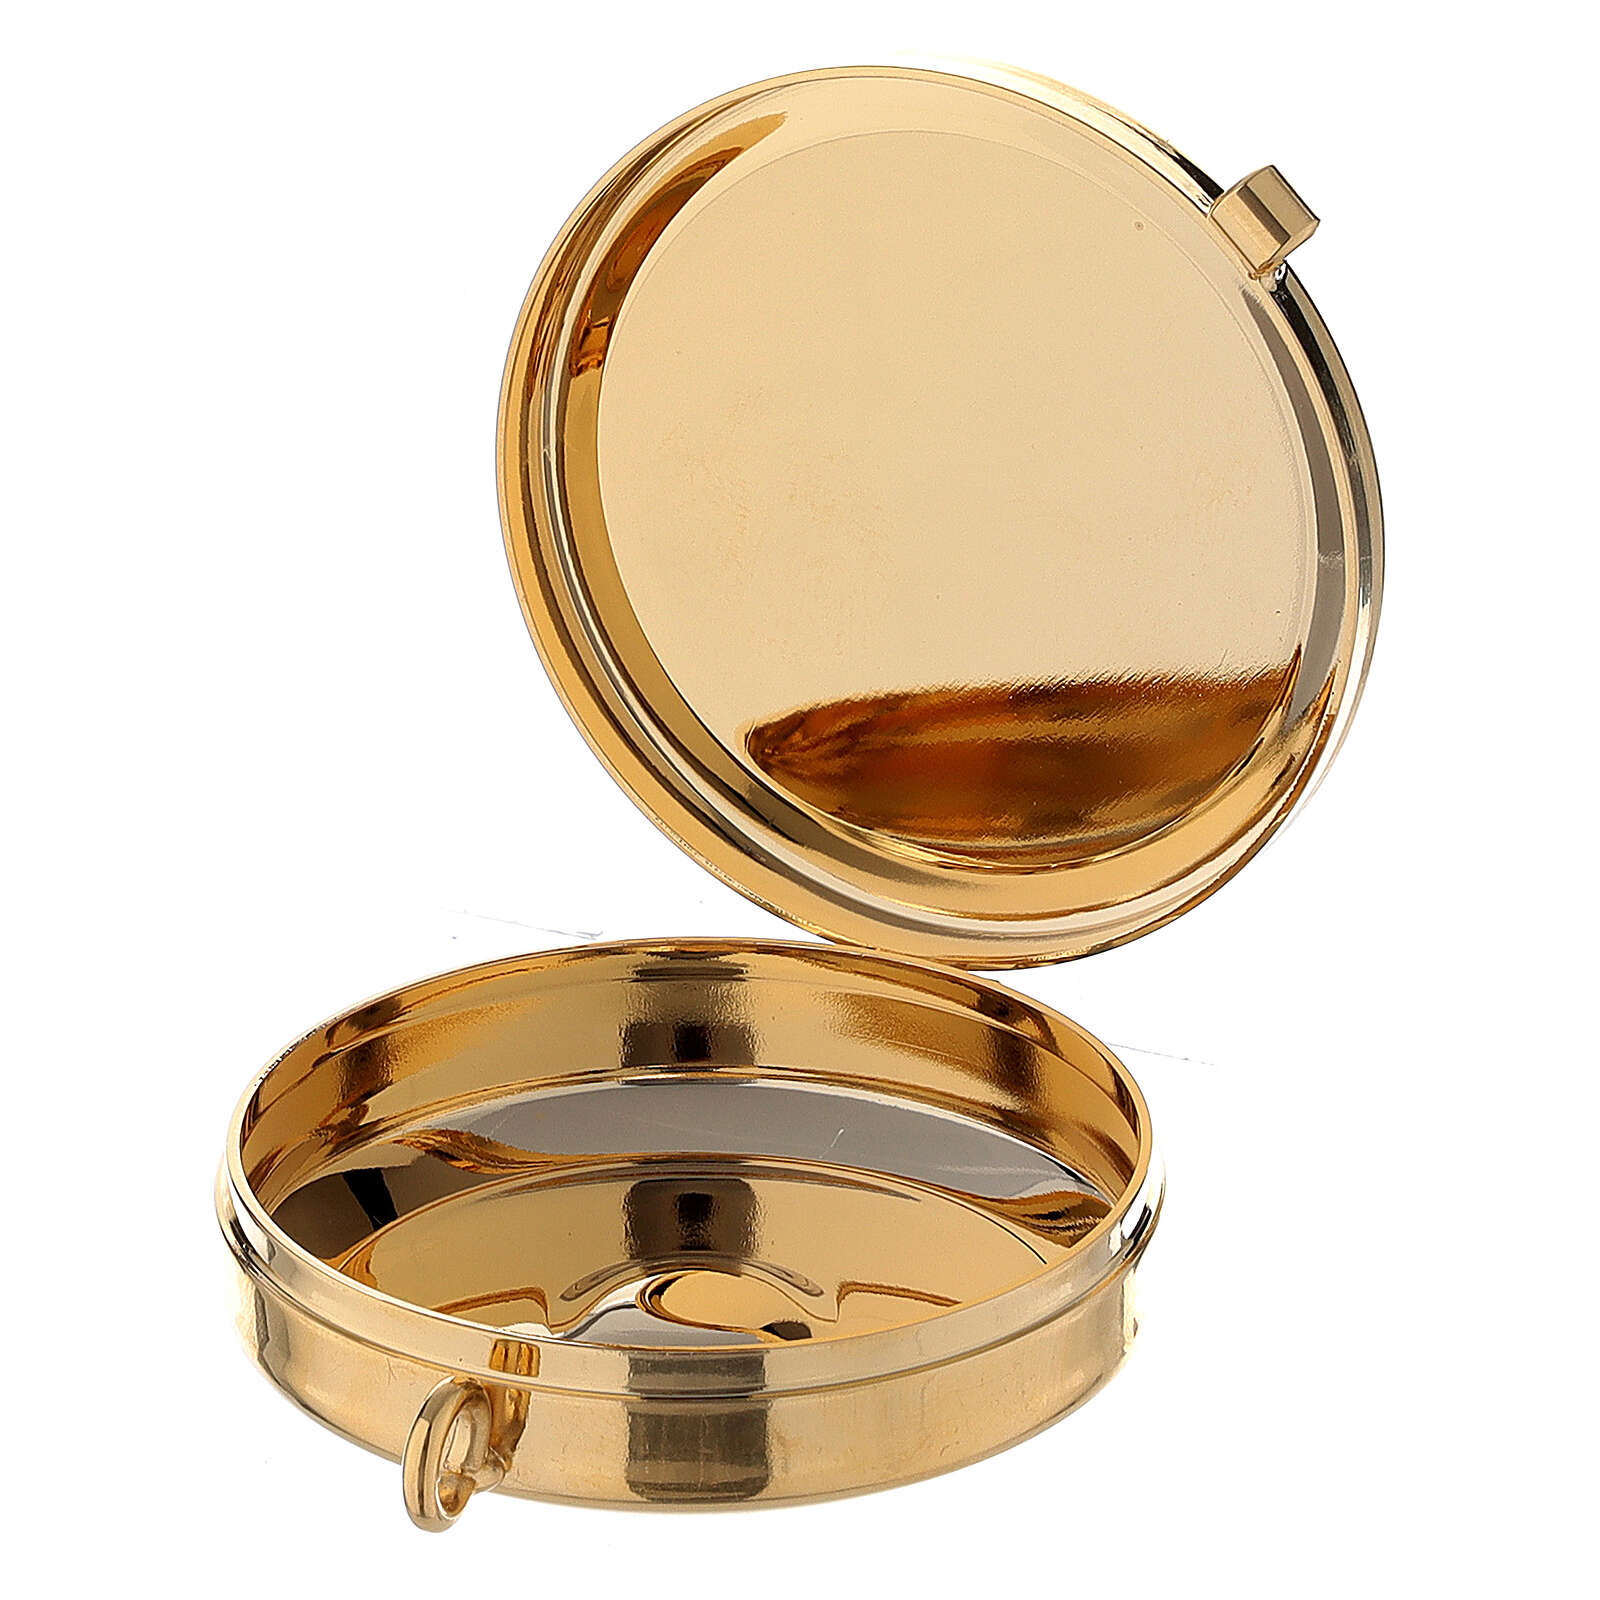 Golden burse with white decorations and a 2 in pyx 3